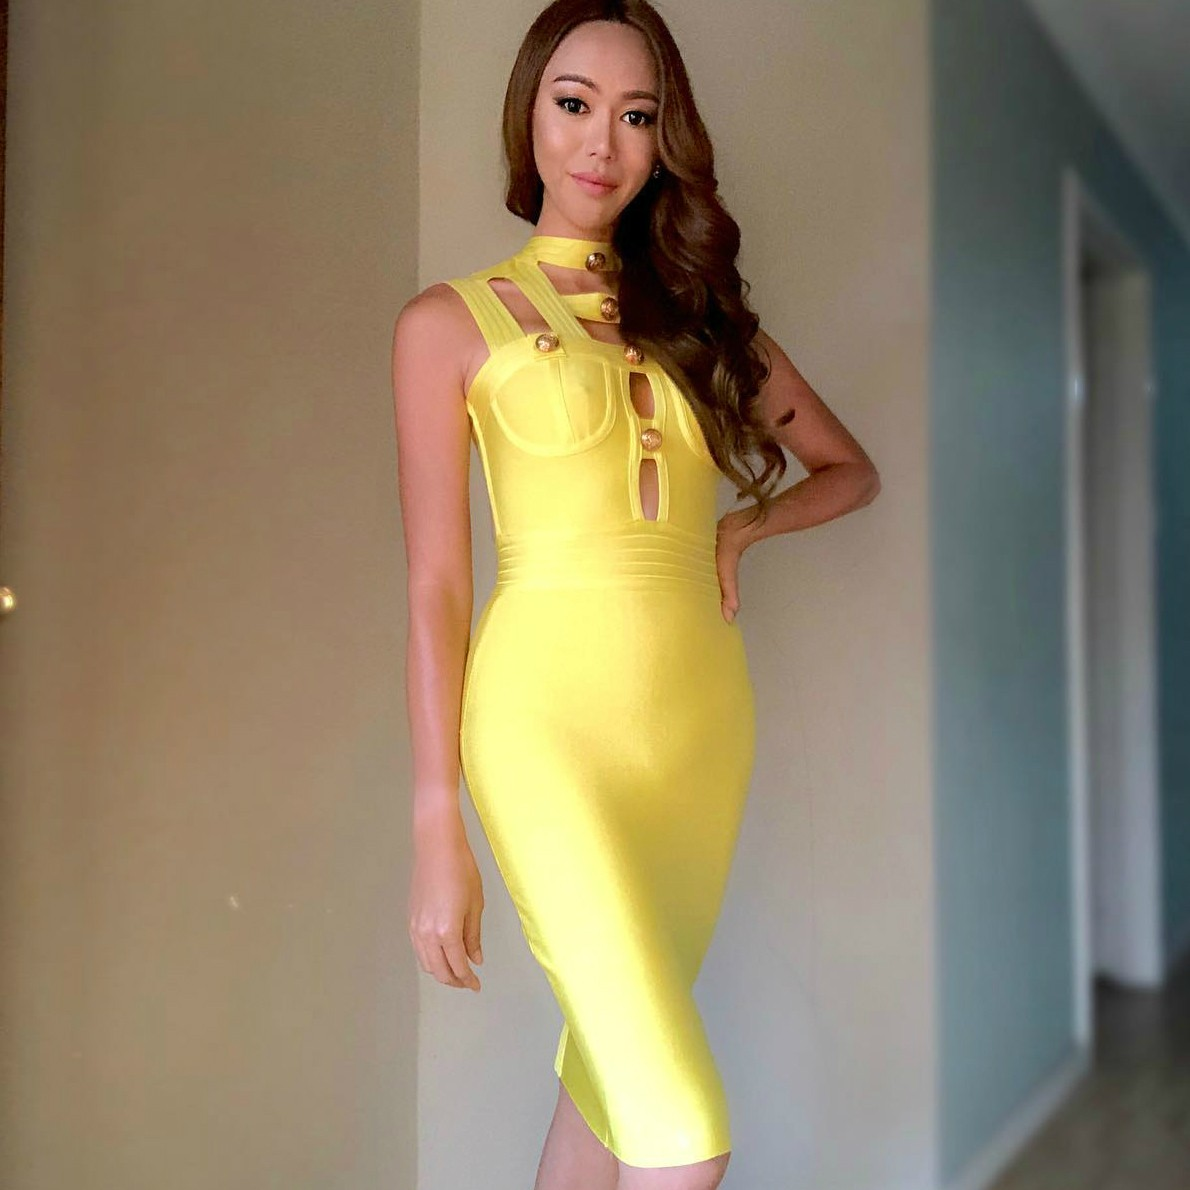 Special Turtle Neck Sleeveless Mini Cut Out Buttoned Yellow Bandage Dress HB766-Yellow